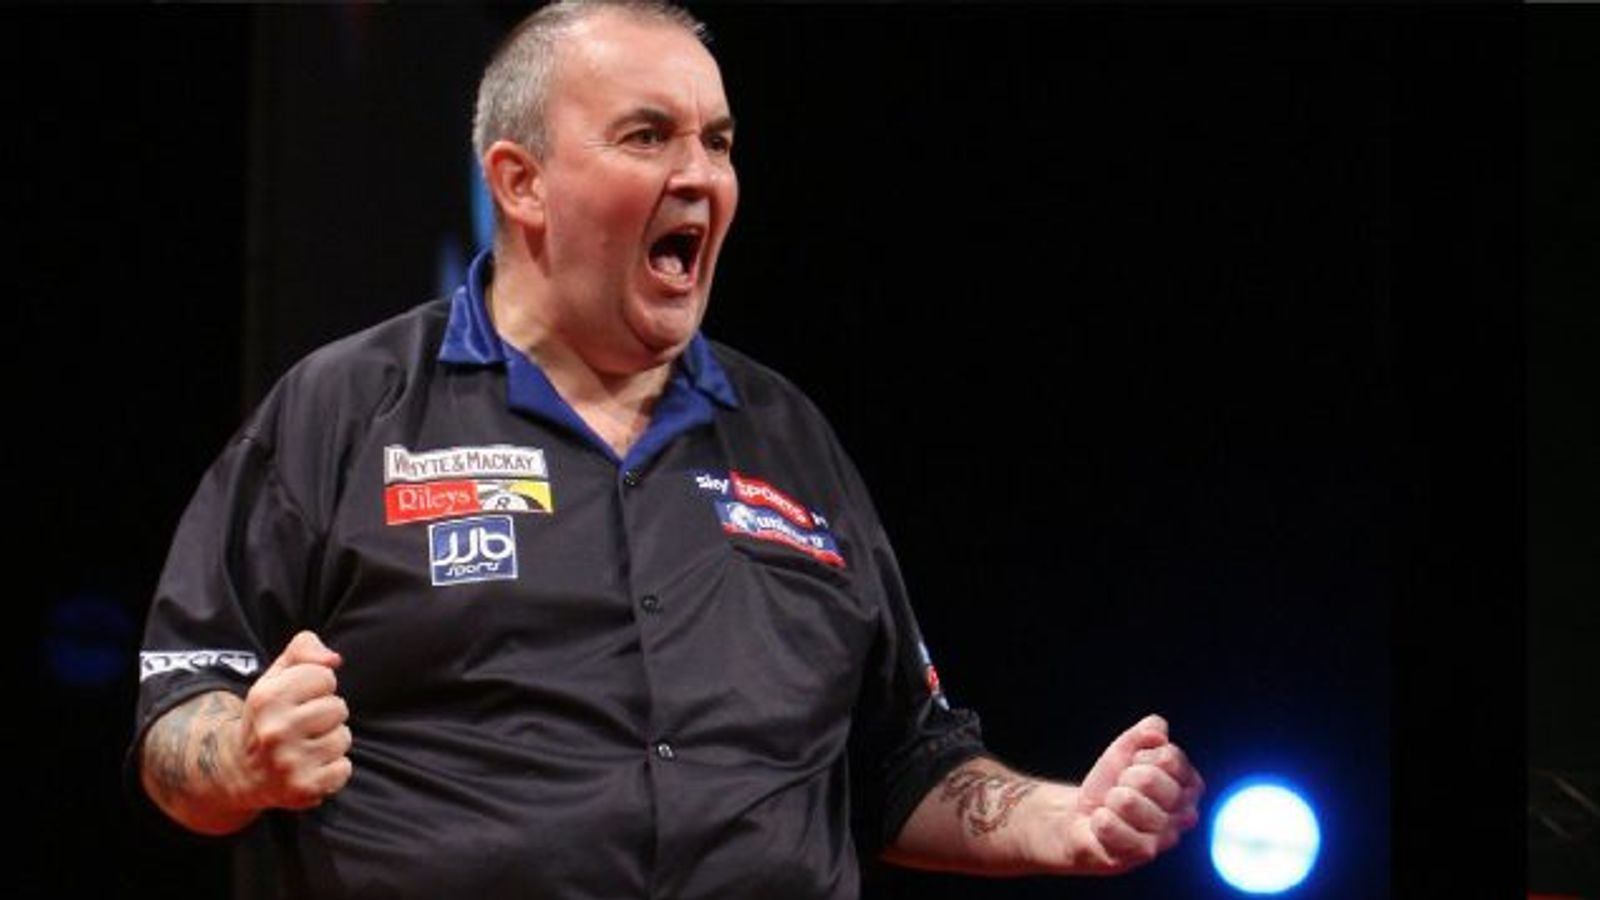 Phil Taylor reflects on his brace of Premier League nine-darters a decade ago today